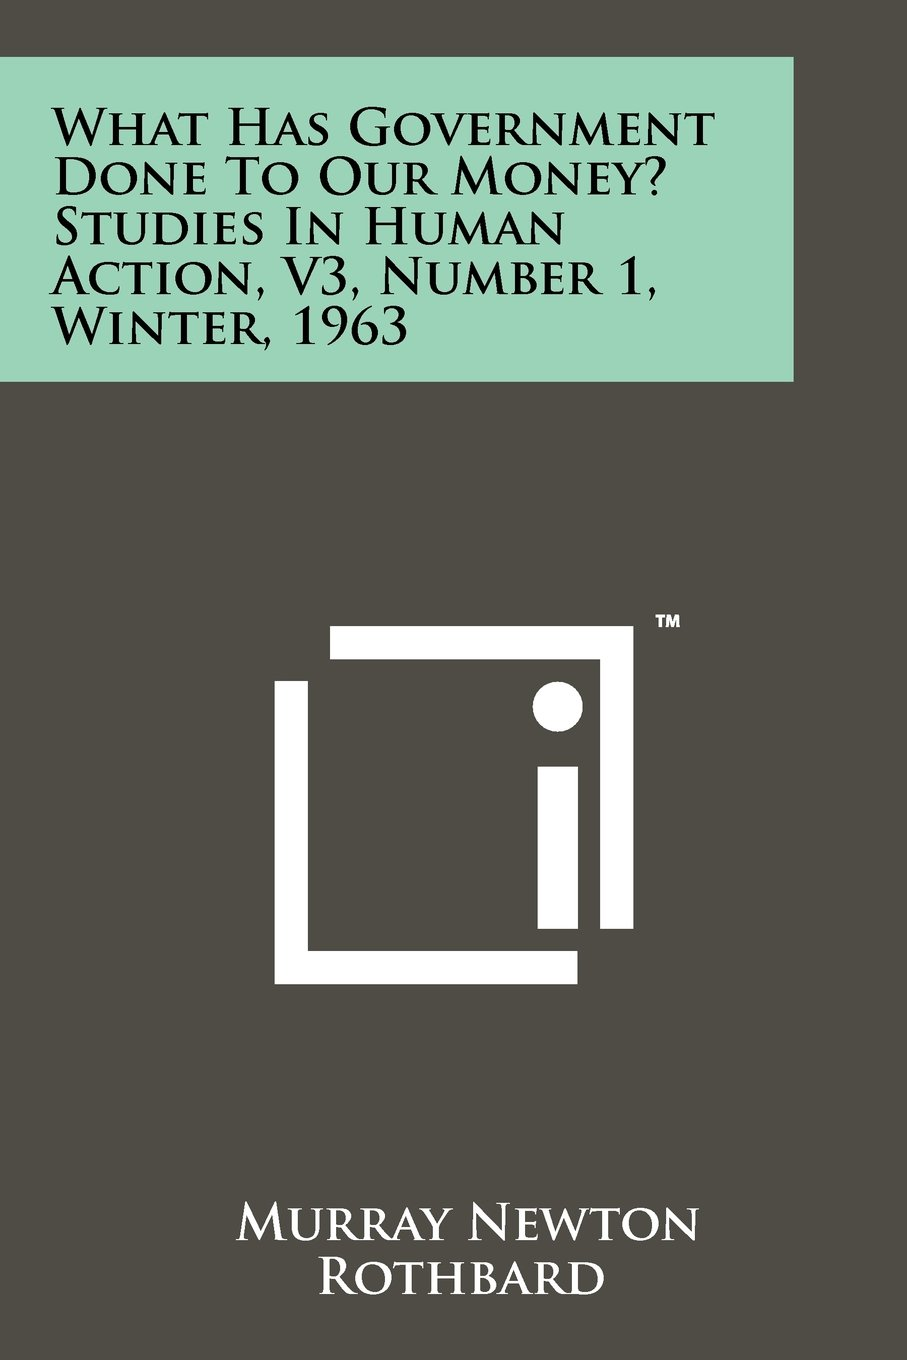 What Has Government Done To Our Money? Studies In Human Action, V3, Number 1, Winter, 1963 PDF